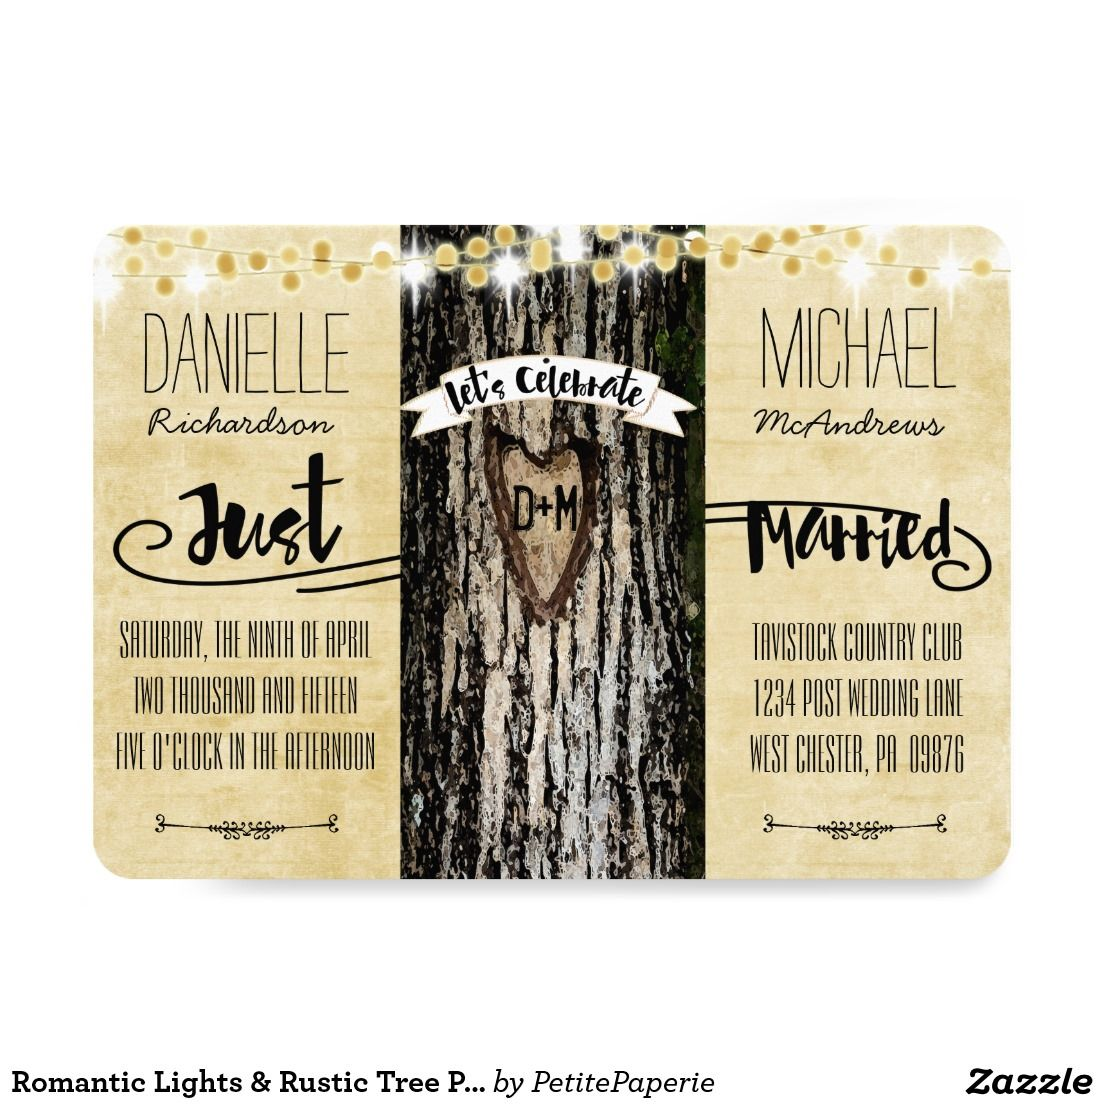 Rustic country burlap string lights lace wedding card - Romantic Lights Rustic Tree Post Wedding Invite